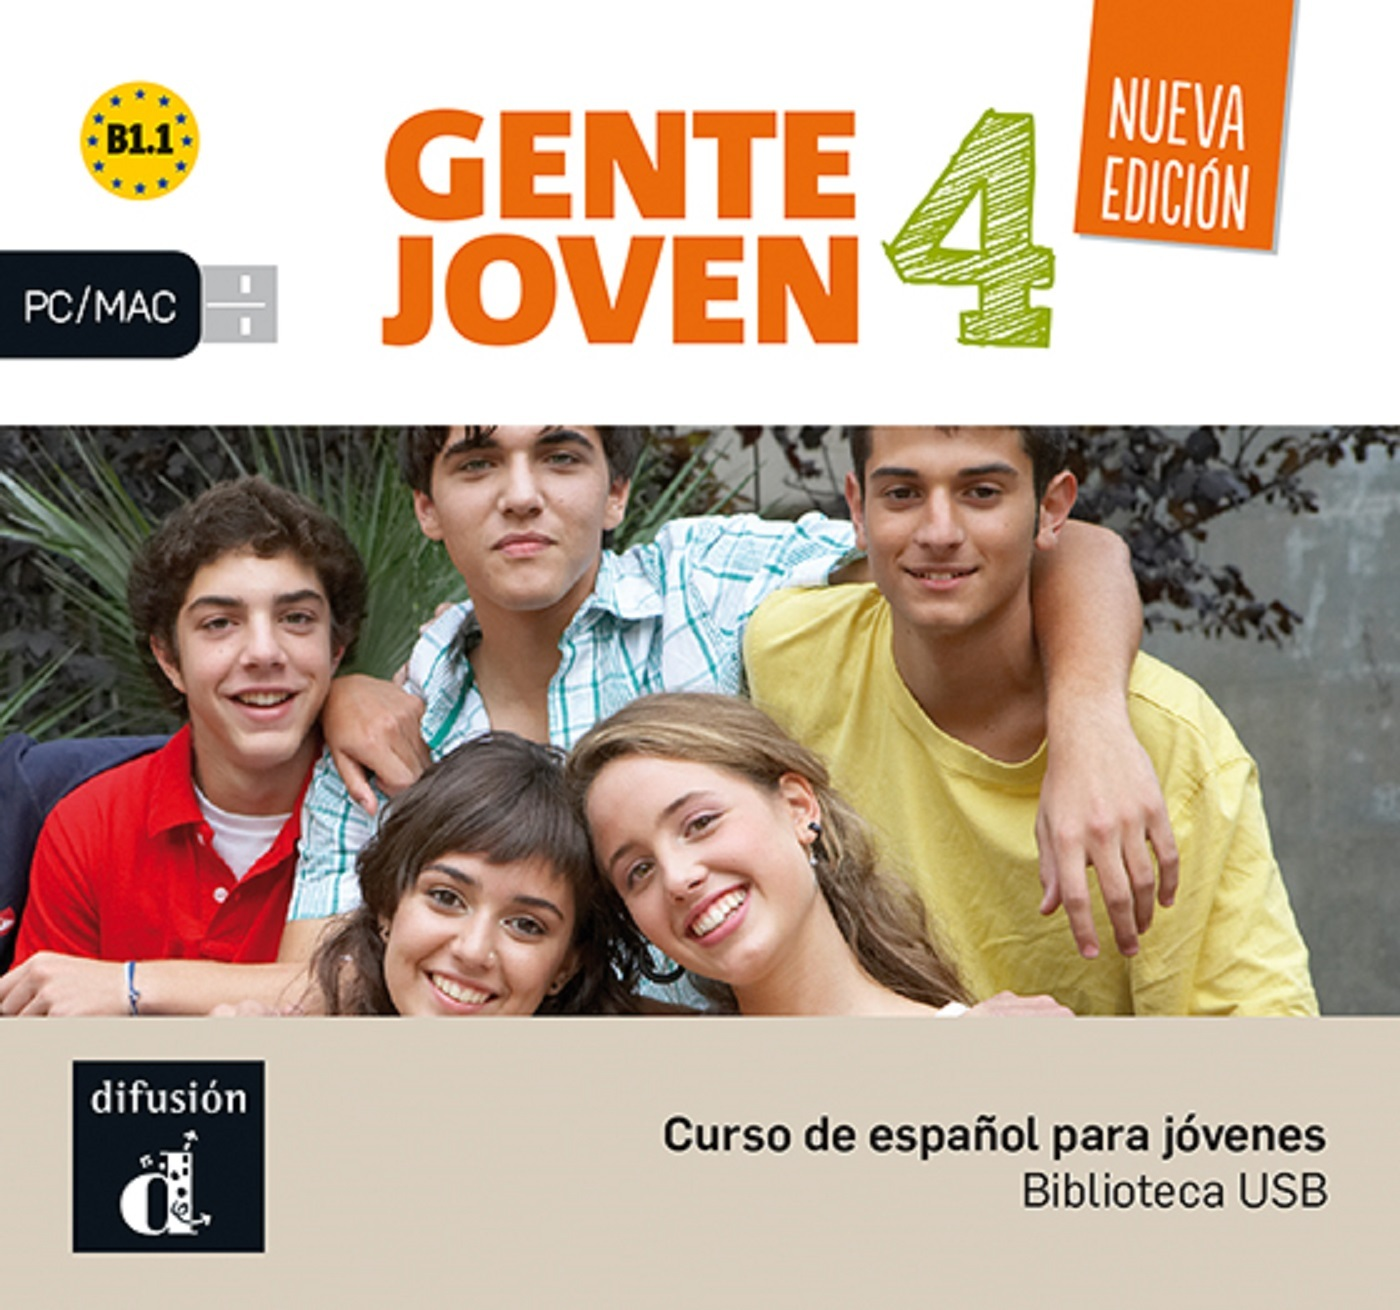 GENTE JOVEN 4 - CLE USB NED